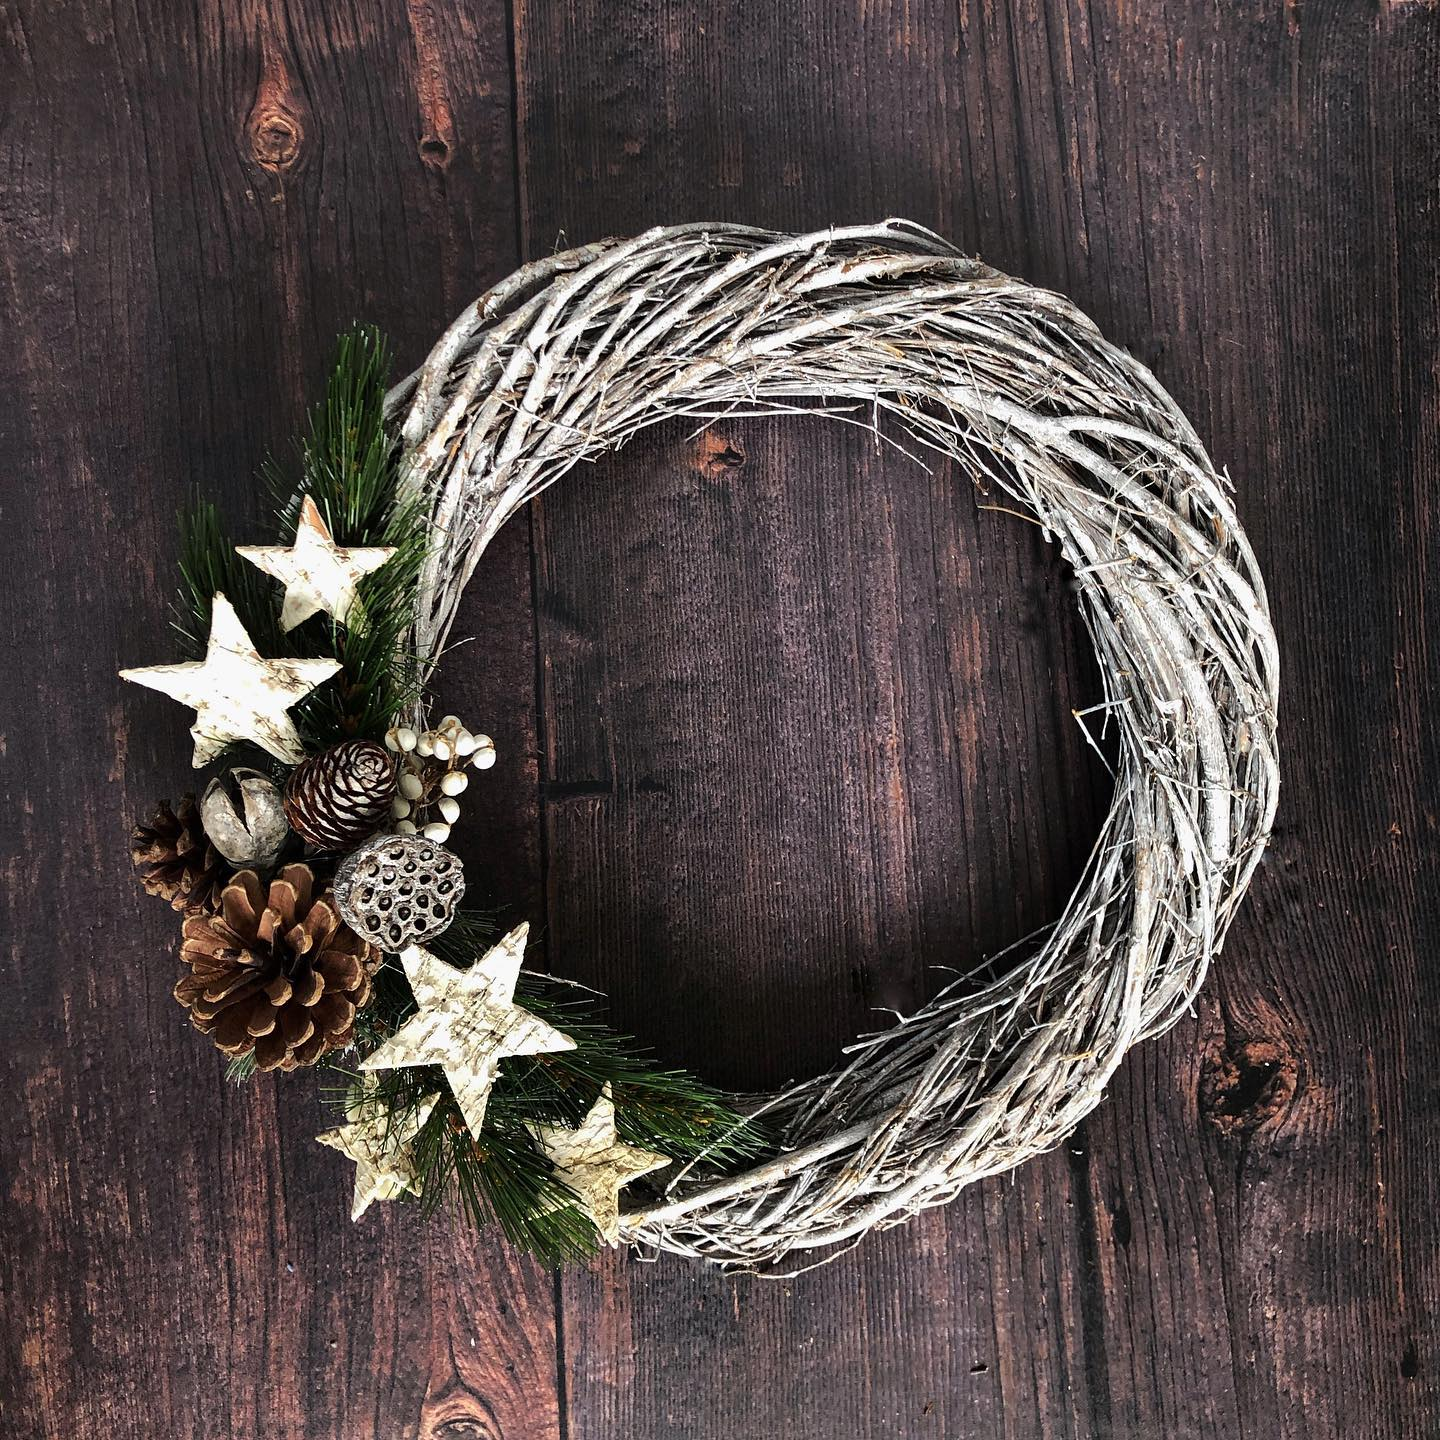 """Created this star wreath for the front door """"When it rains look for rainbows,When it's dark look for stars """""""